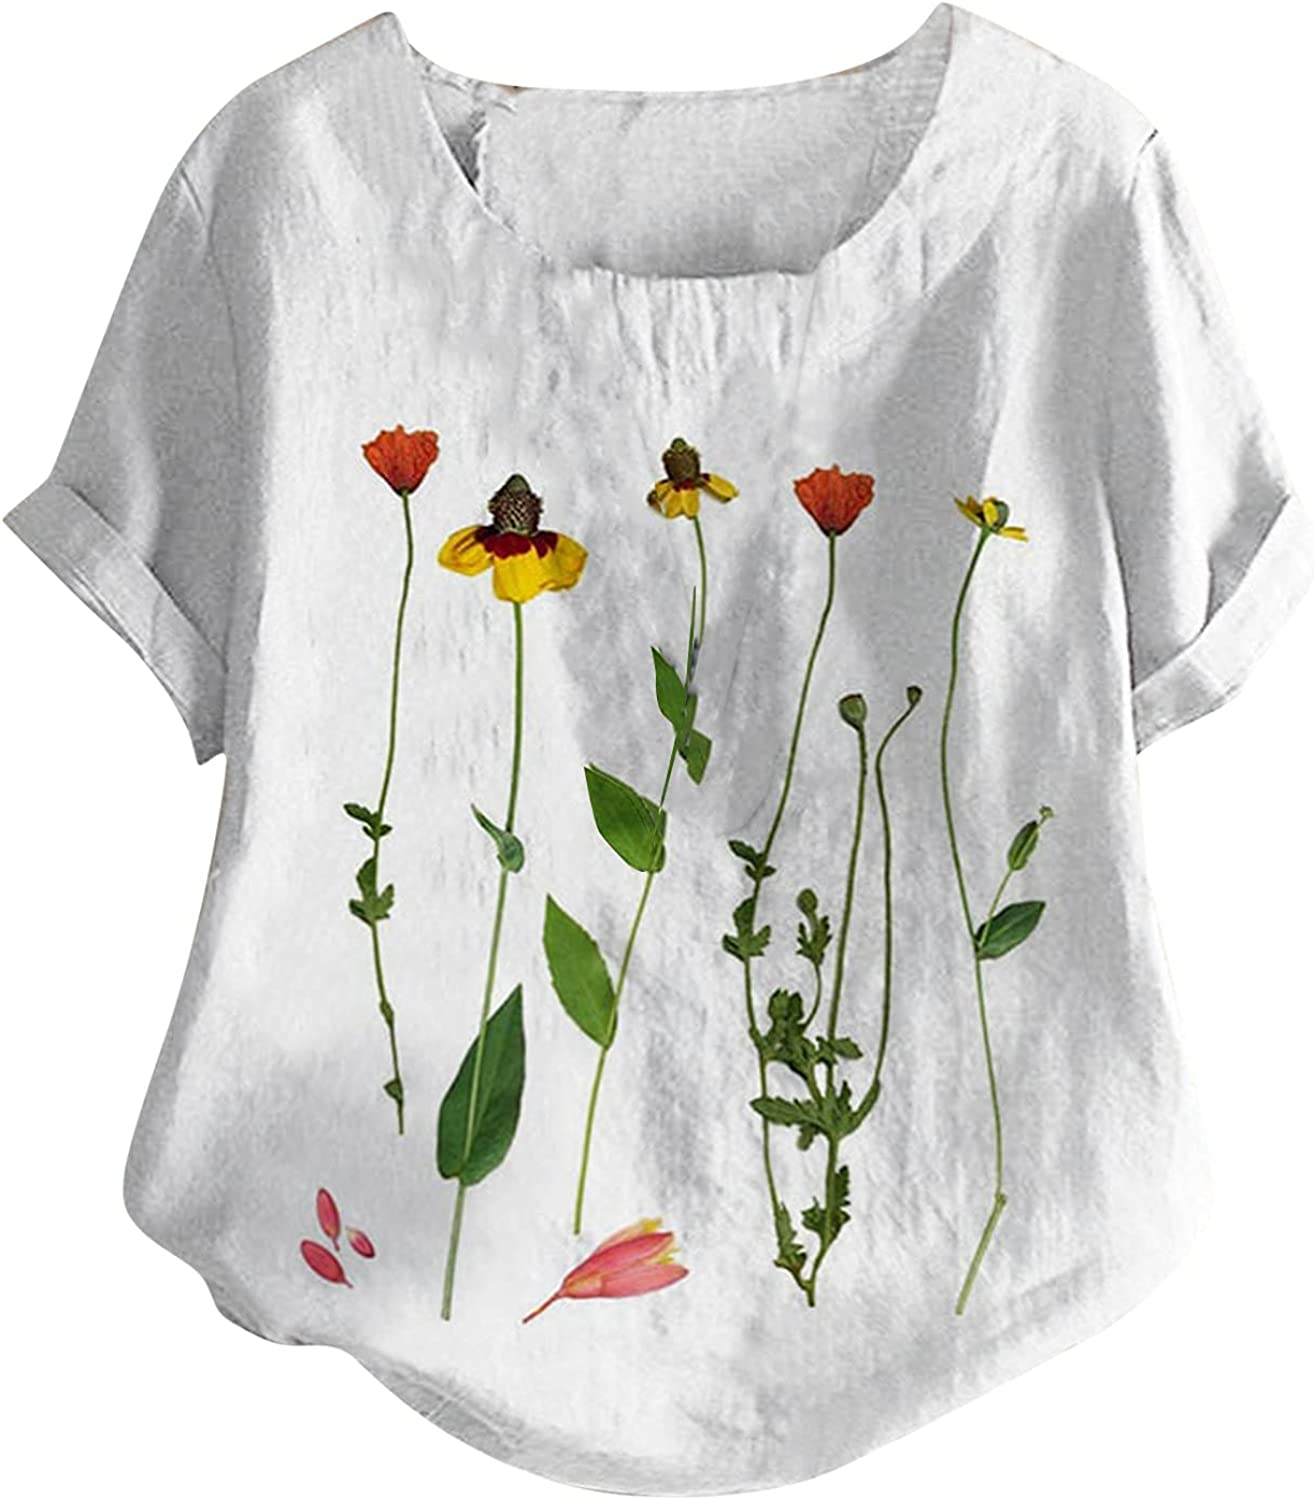 Graphic Tees for Women,Women's Short Sleeve Cotton Linen Shirt Floral Graphic Tops Casual Summer Boatneck Tee Shirts